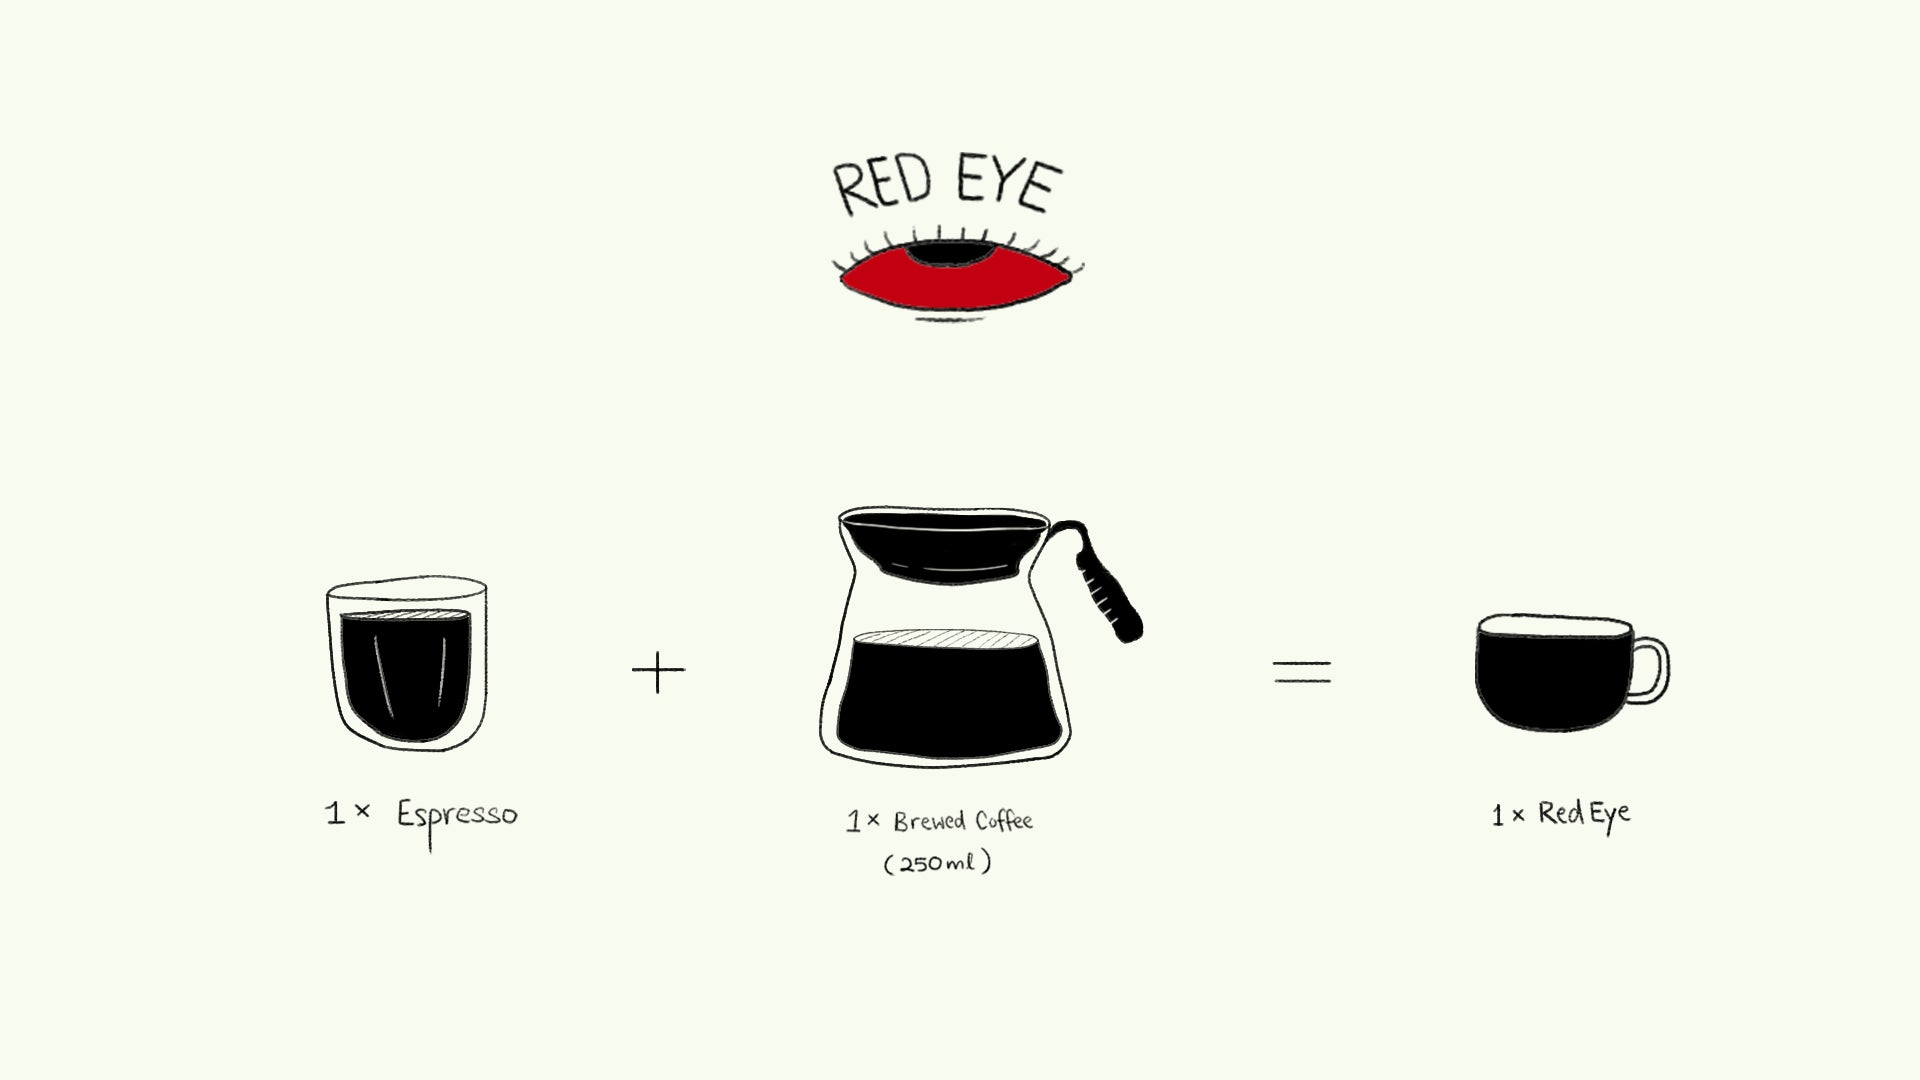 red eye coffee recipe